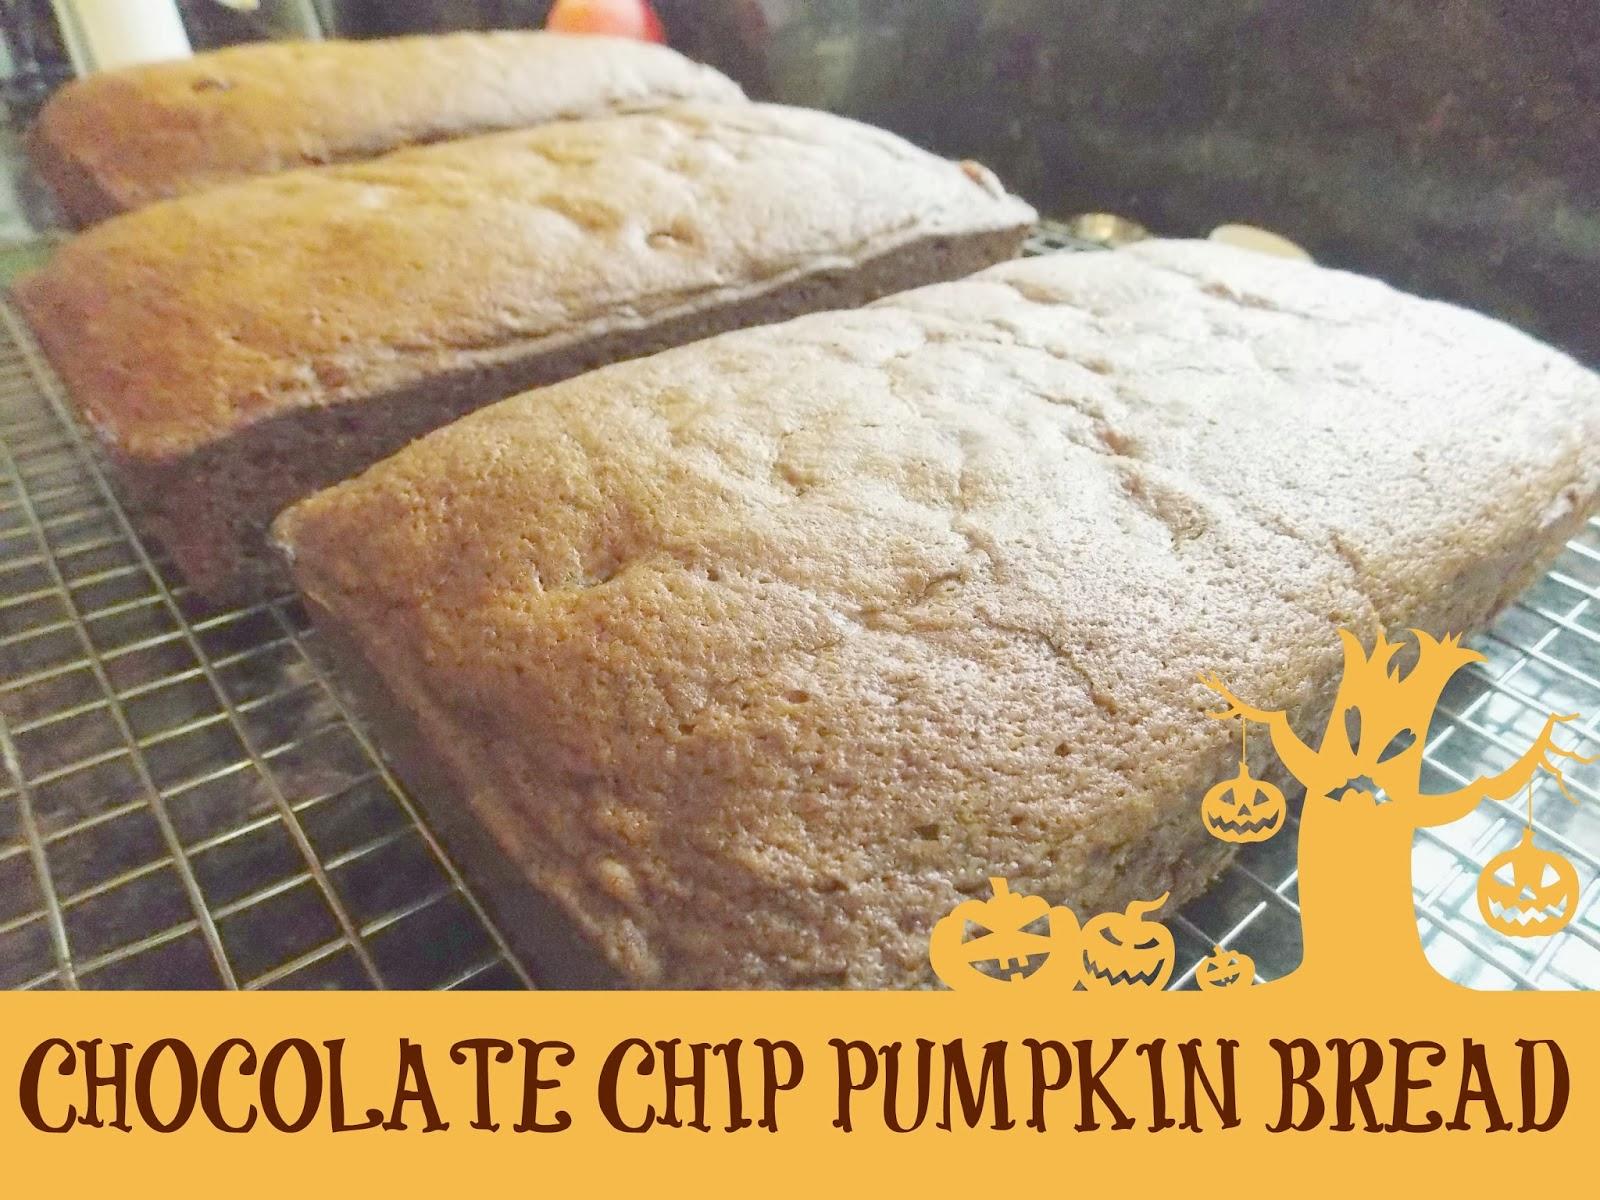 iSavor the Weekend: Chocolate Chip Pumpkin Bread